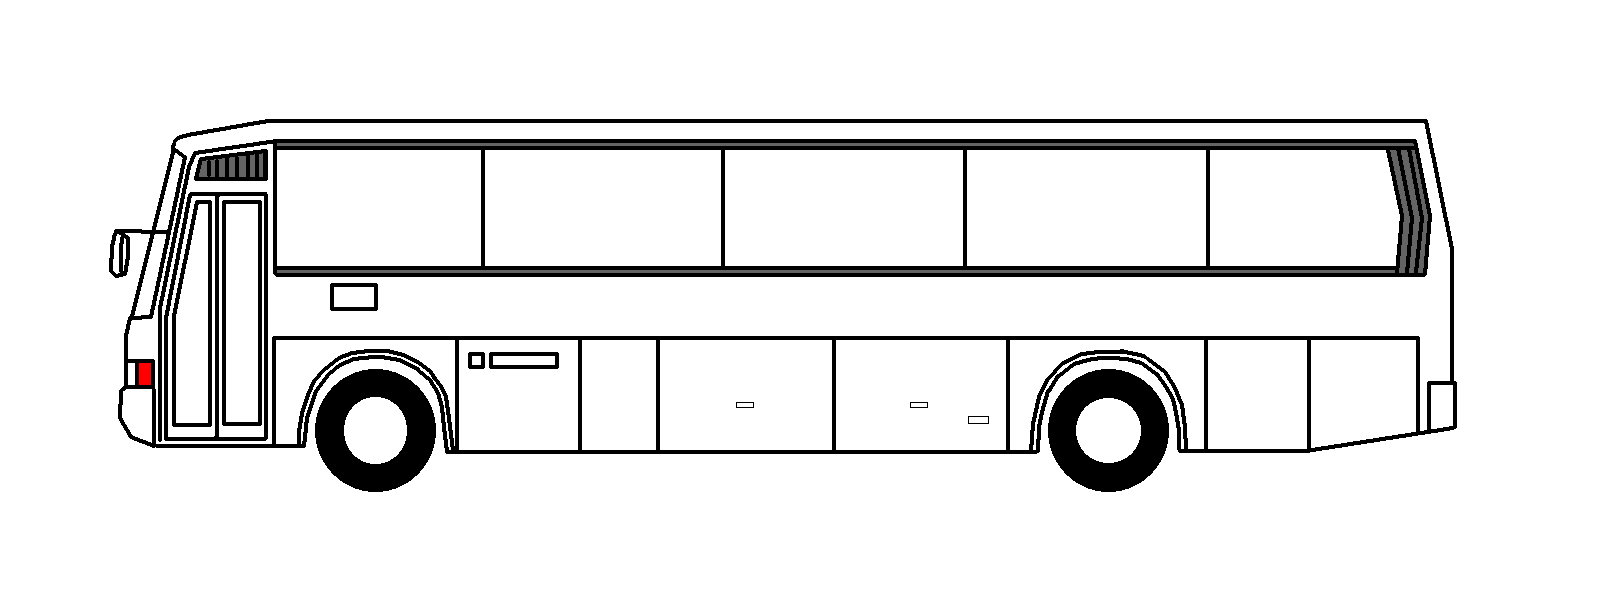 Bus black and white school bus side view clipart black and white  pluspng 2 - City Bus Side View PNG